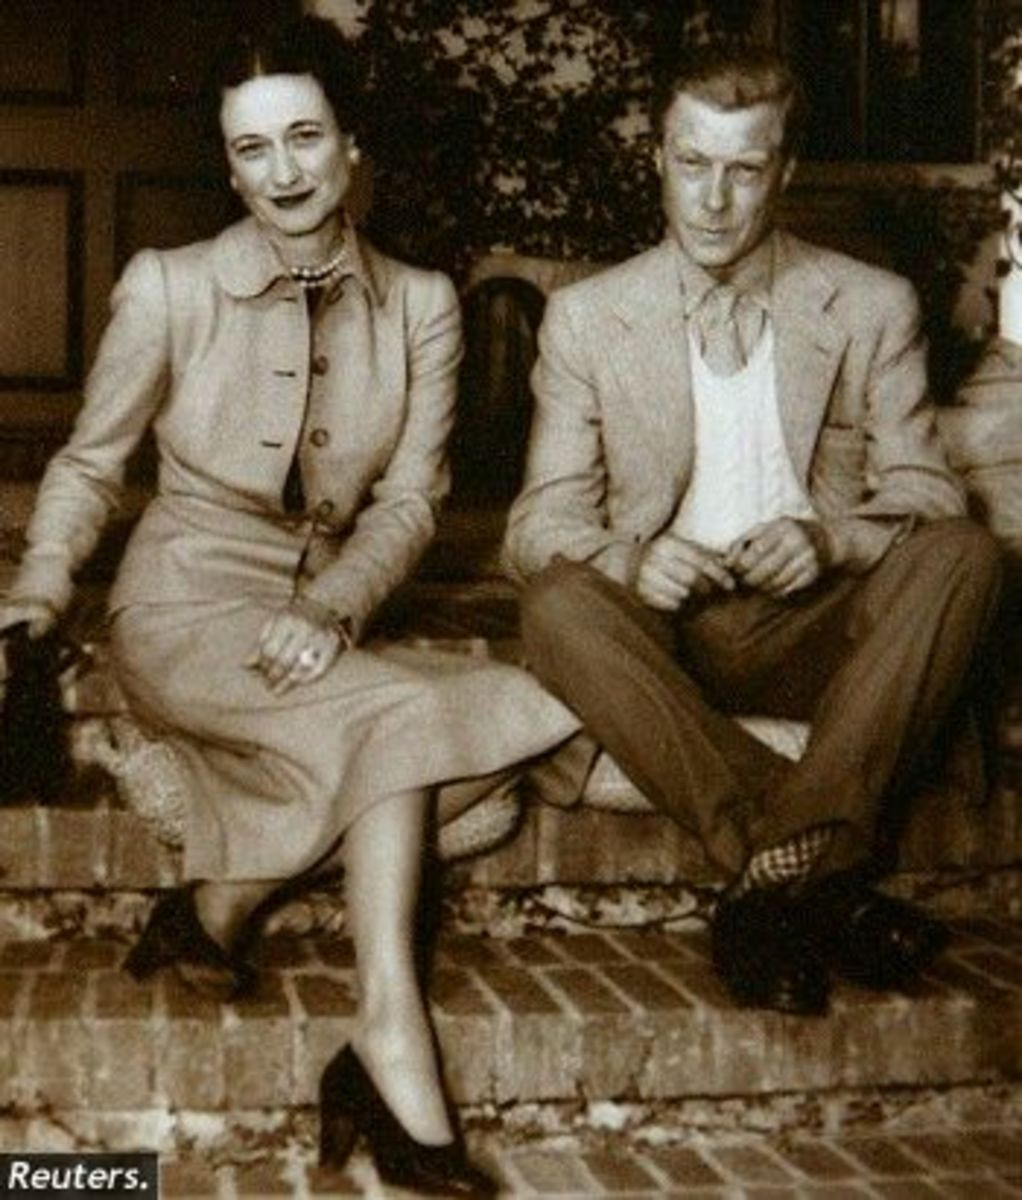 Wallis and Edward. The Duke and Duchess of Windsor